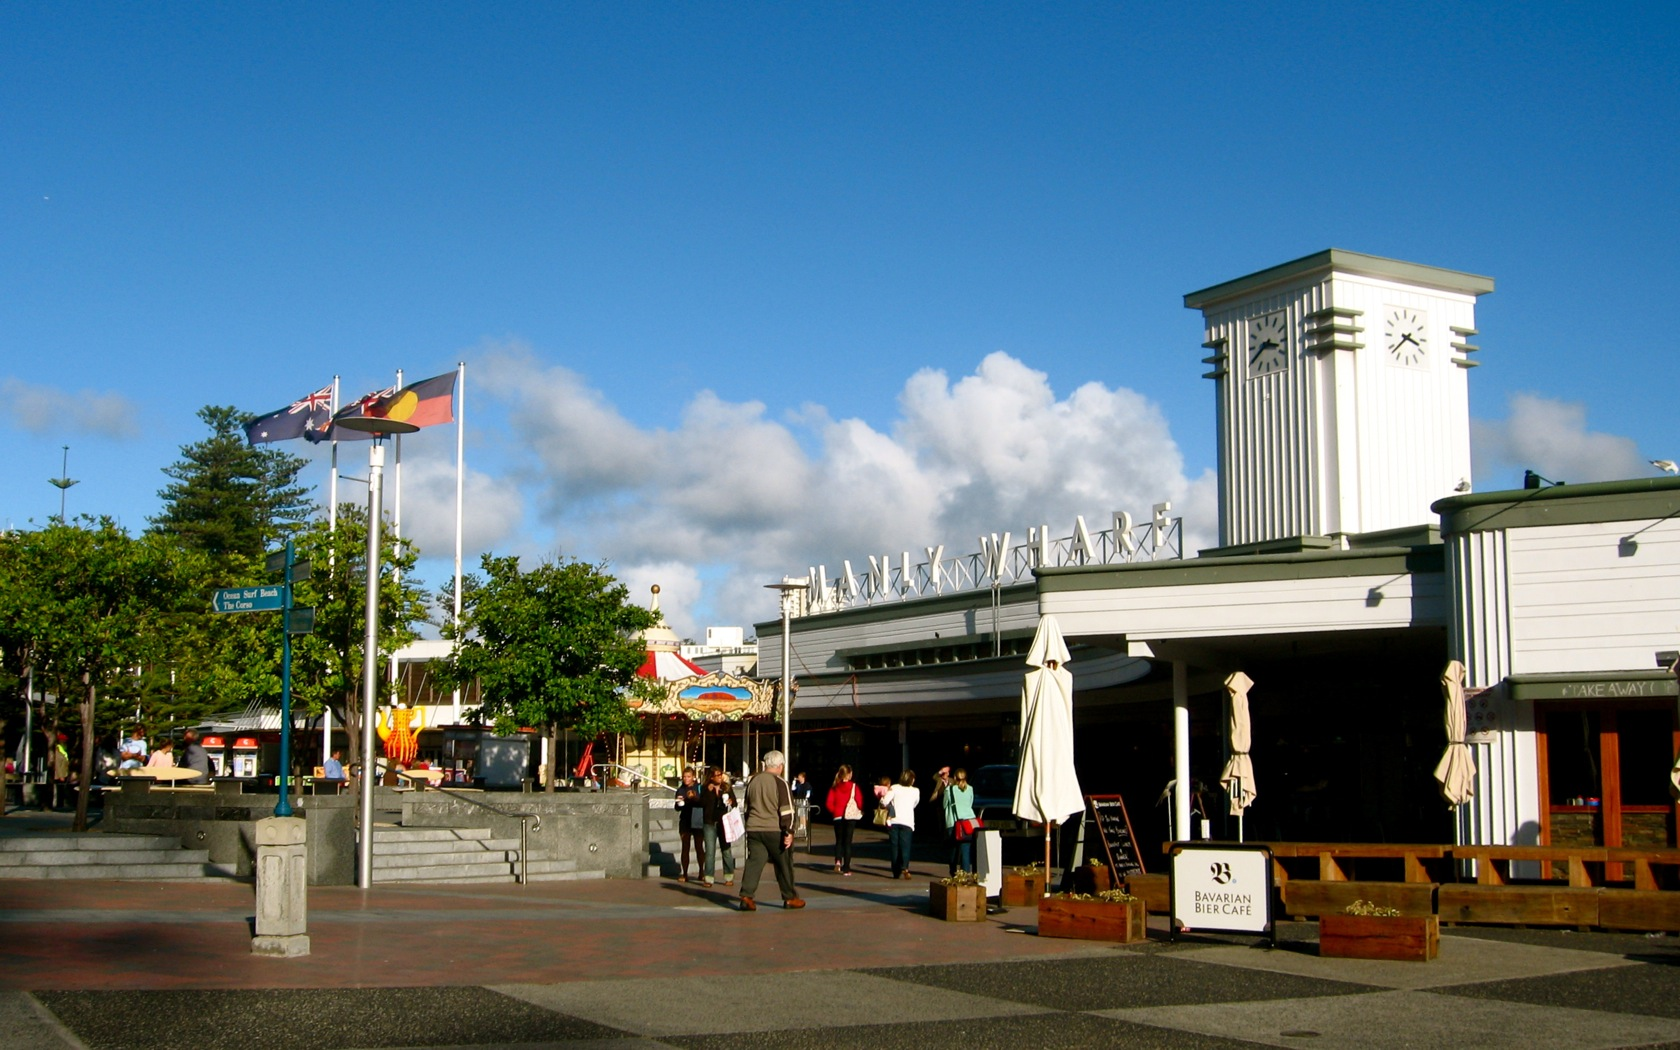 manly wharf - Picture of Manly Beach, Sydney - TripAdvisor